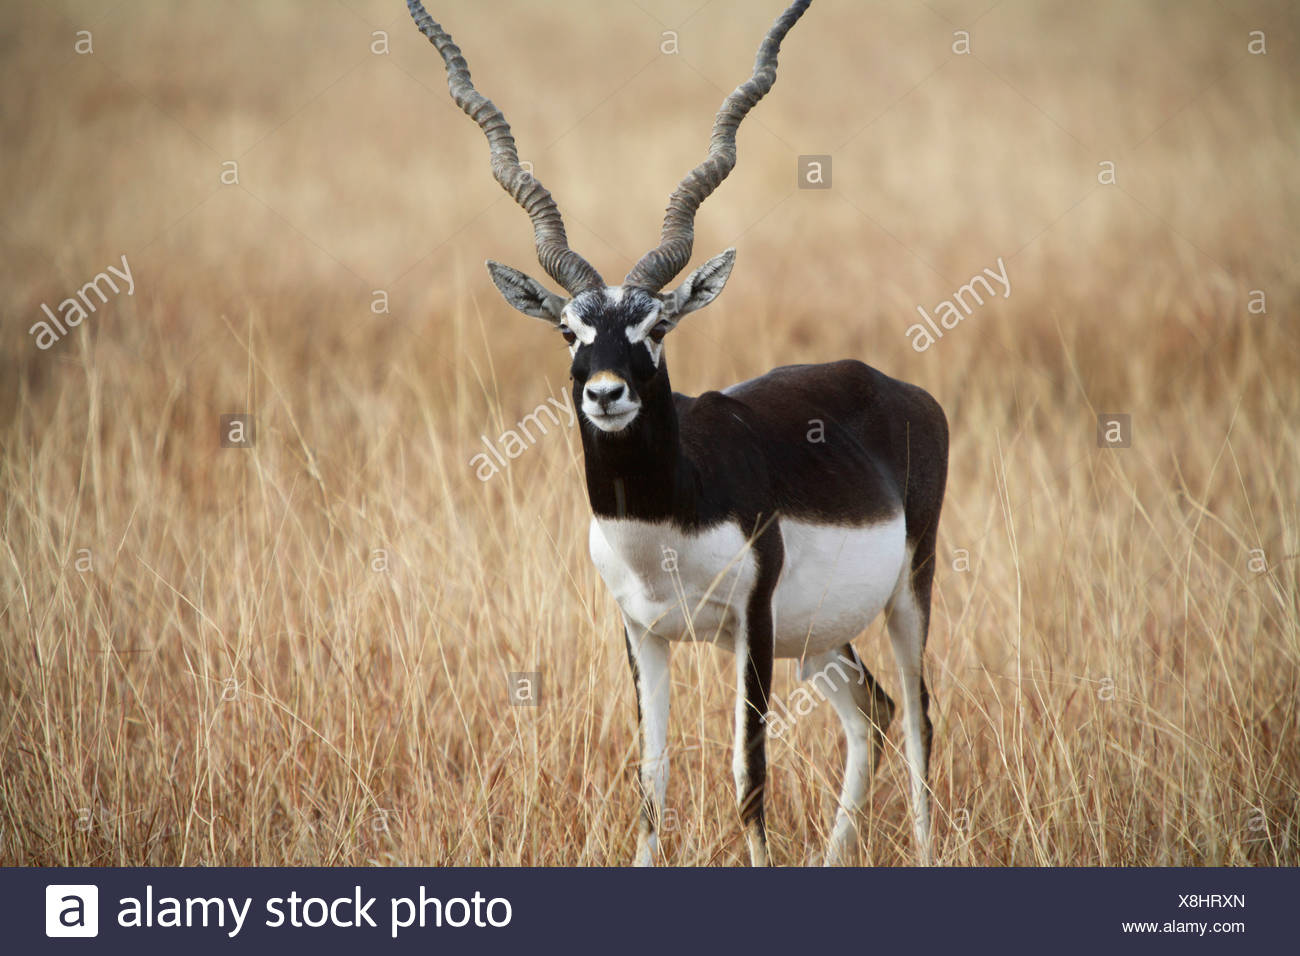 A Male Black Buck, Antelope cervicapra at Velavadar sanctuary, Gujrat, India. - Stock Image